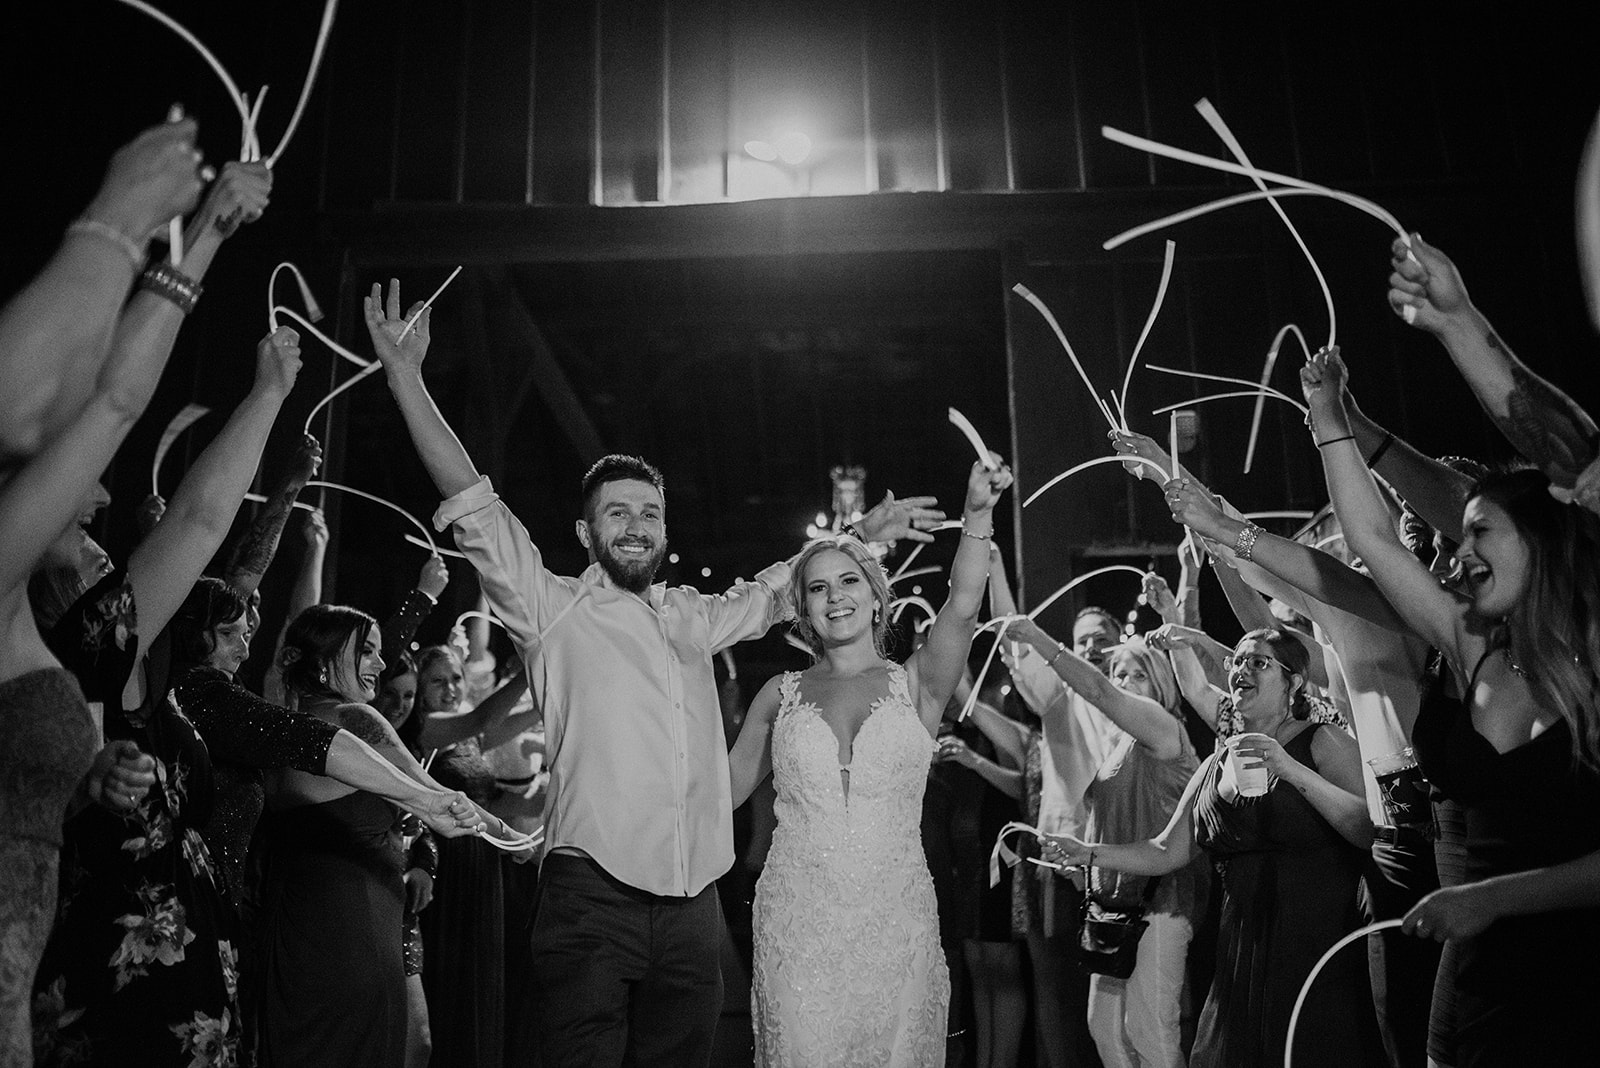 overthevineswisconsinwedding_1697.jpg